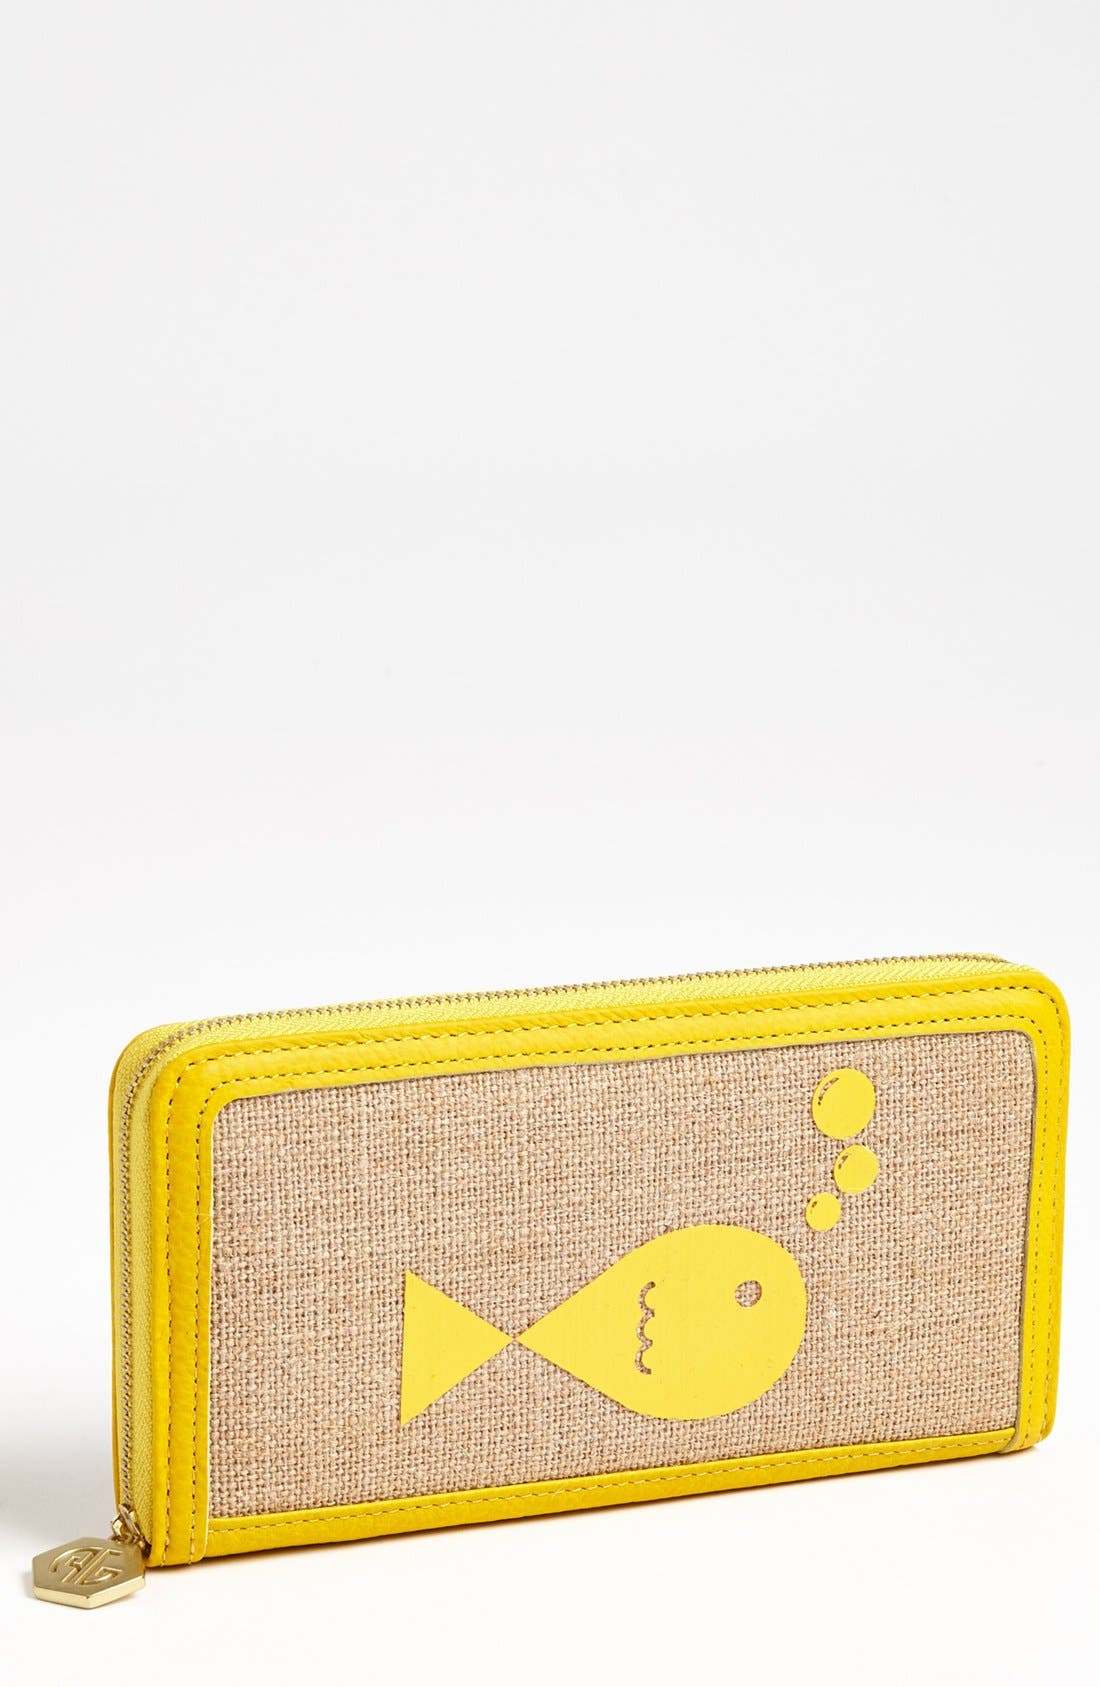 Alternate Image 1 Selected - Jonathan Adler 'Fish' Continental Wallet